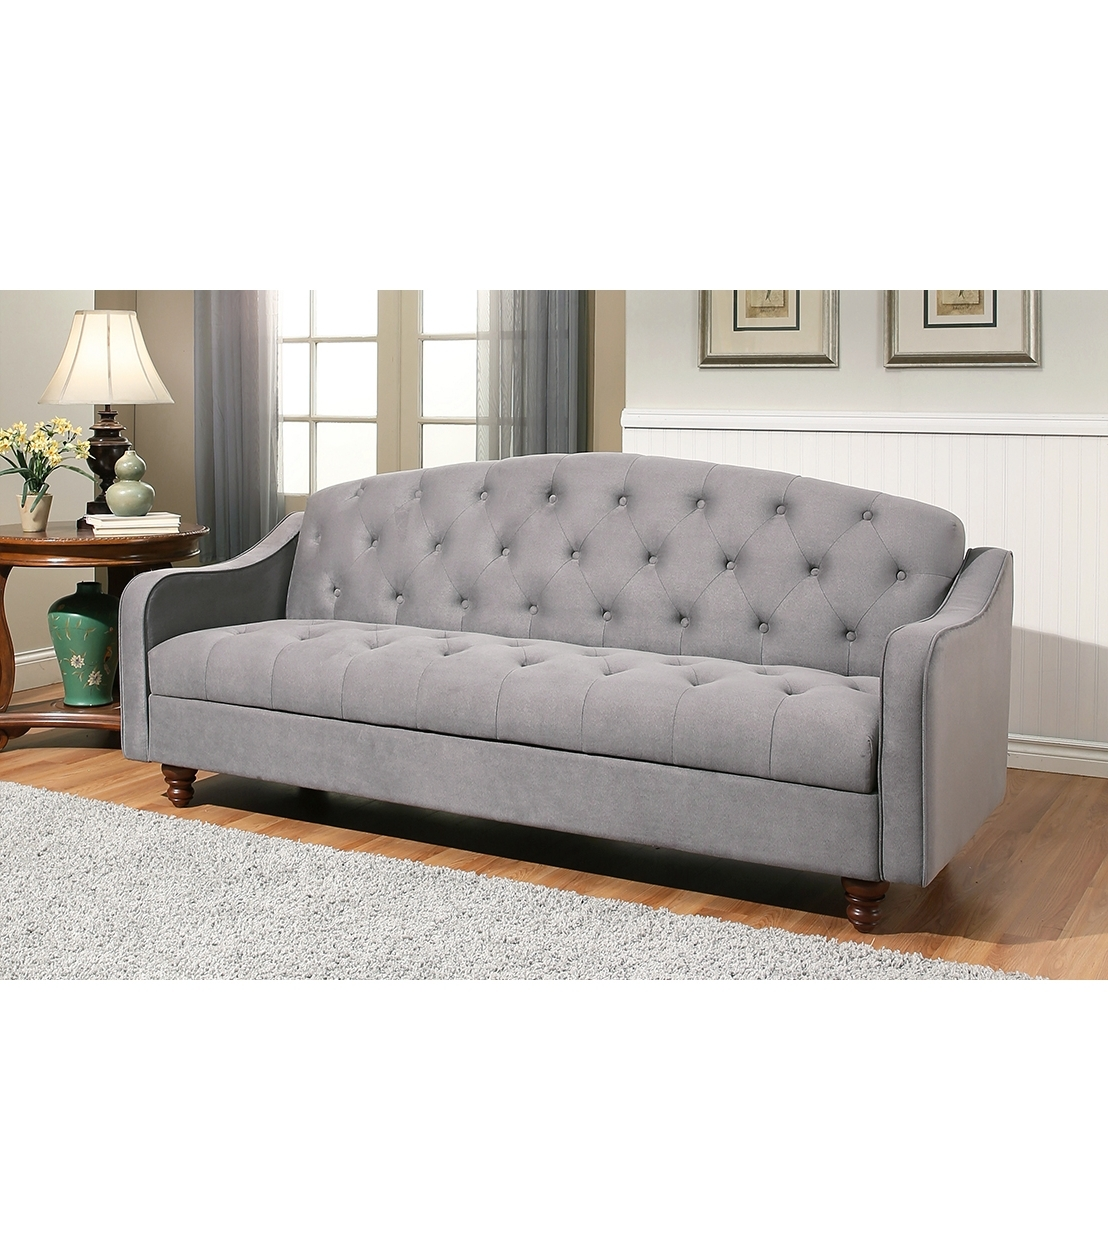 Kijiji Mississauga Sectional Sofas Regarding Well Known Furniture : Quirky Chesterfield Sofa Kijiji Sofa Set Mississauga (View 3 of 20)